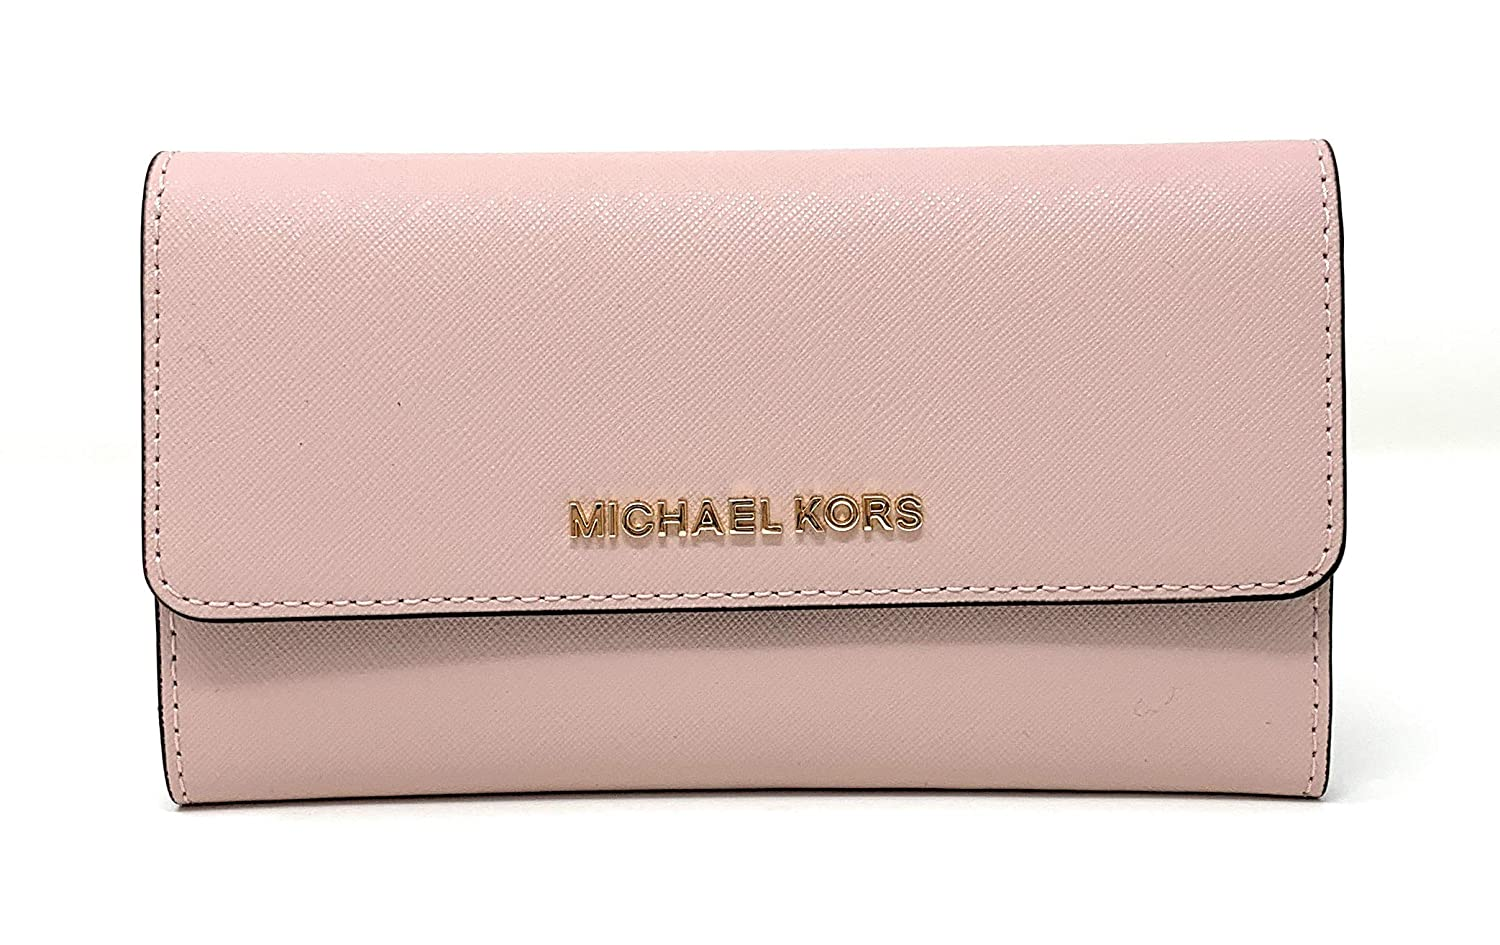 e560eb606ed0 Michael Kors Jet Set Travel Large Trifold Saffiano Leather Wallet -  Blossom Fawn  Amazon.co.uk  Clothing